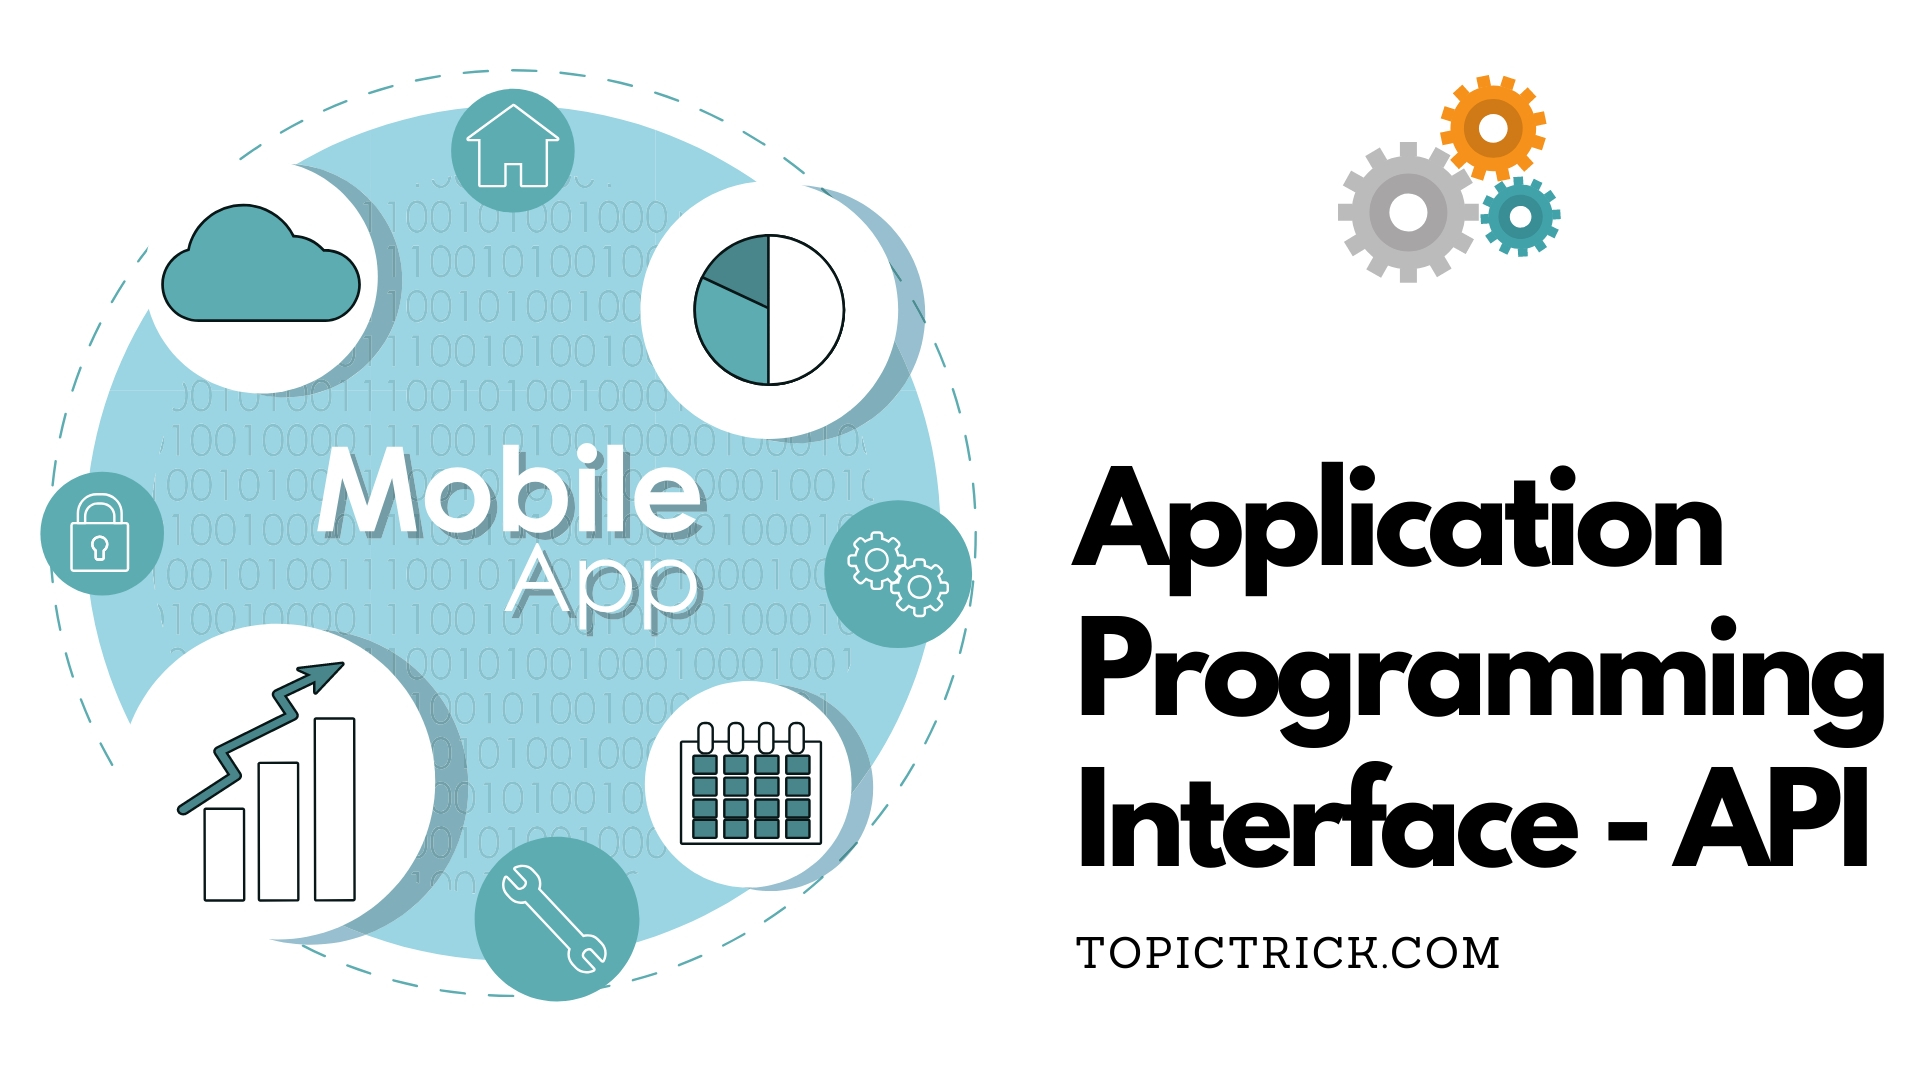 Application Programming Interfaces (API) – REST, SOAP, WEB API, Microservice. Easy 10 Min Read.